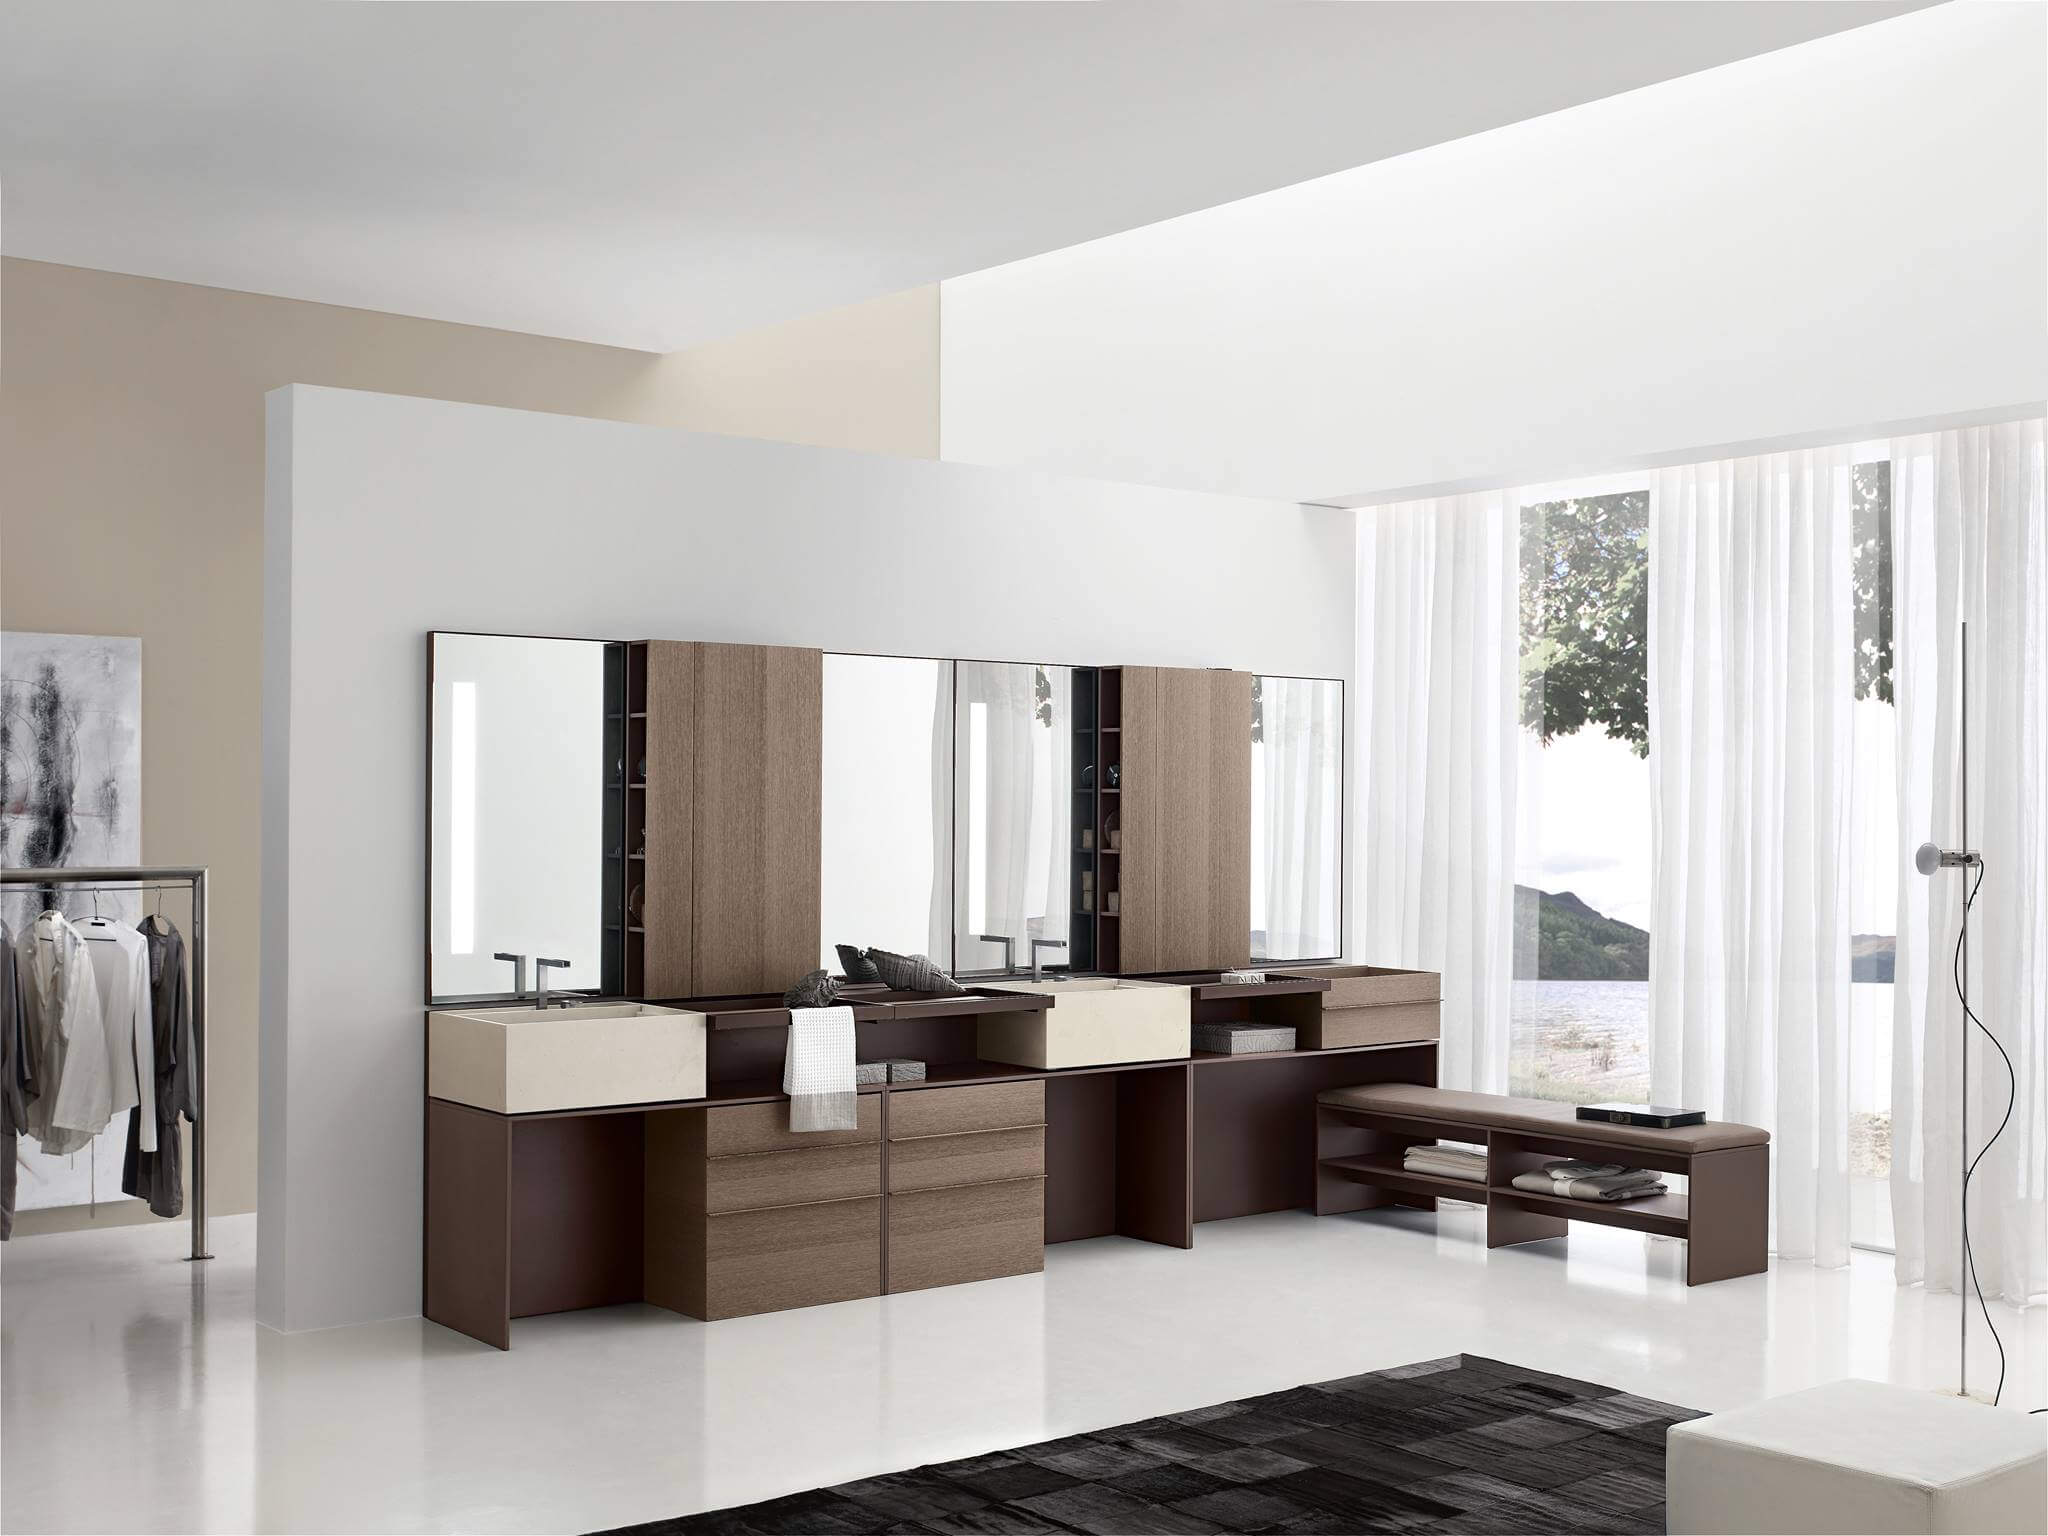 traumb der und luxusb der vom designer torsten m ller. Black Bedroom Furniture Sets. Home Design Ideas